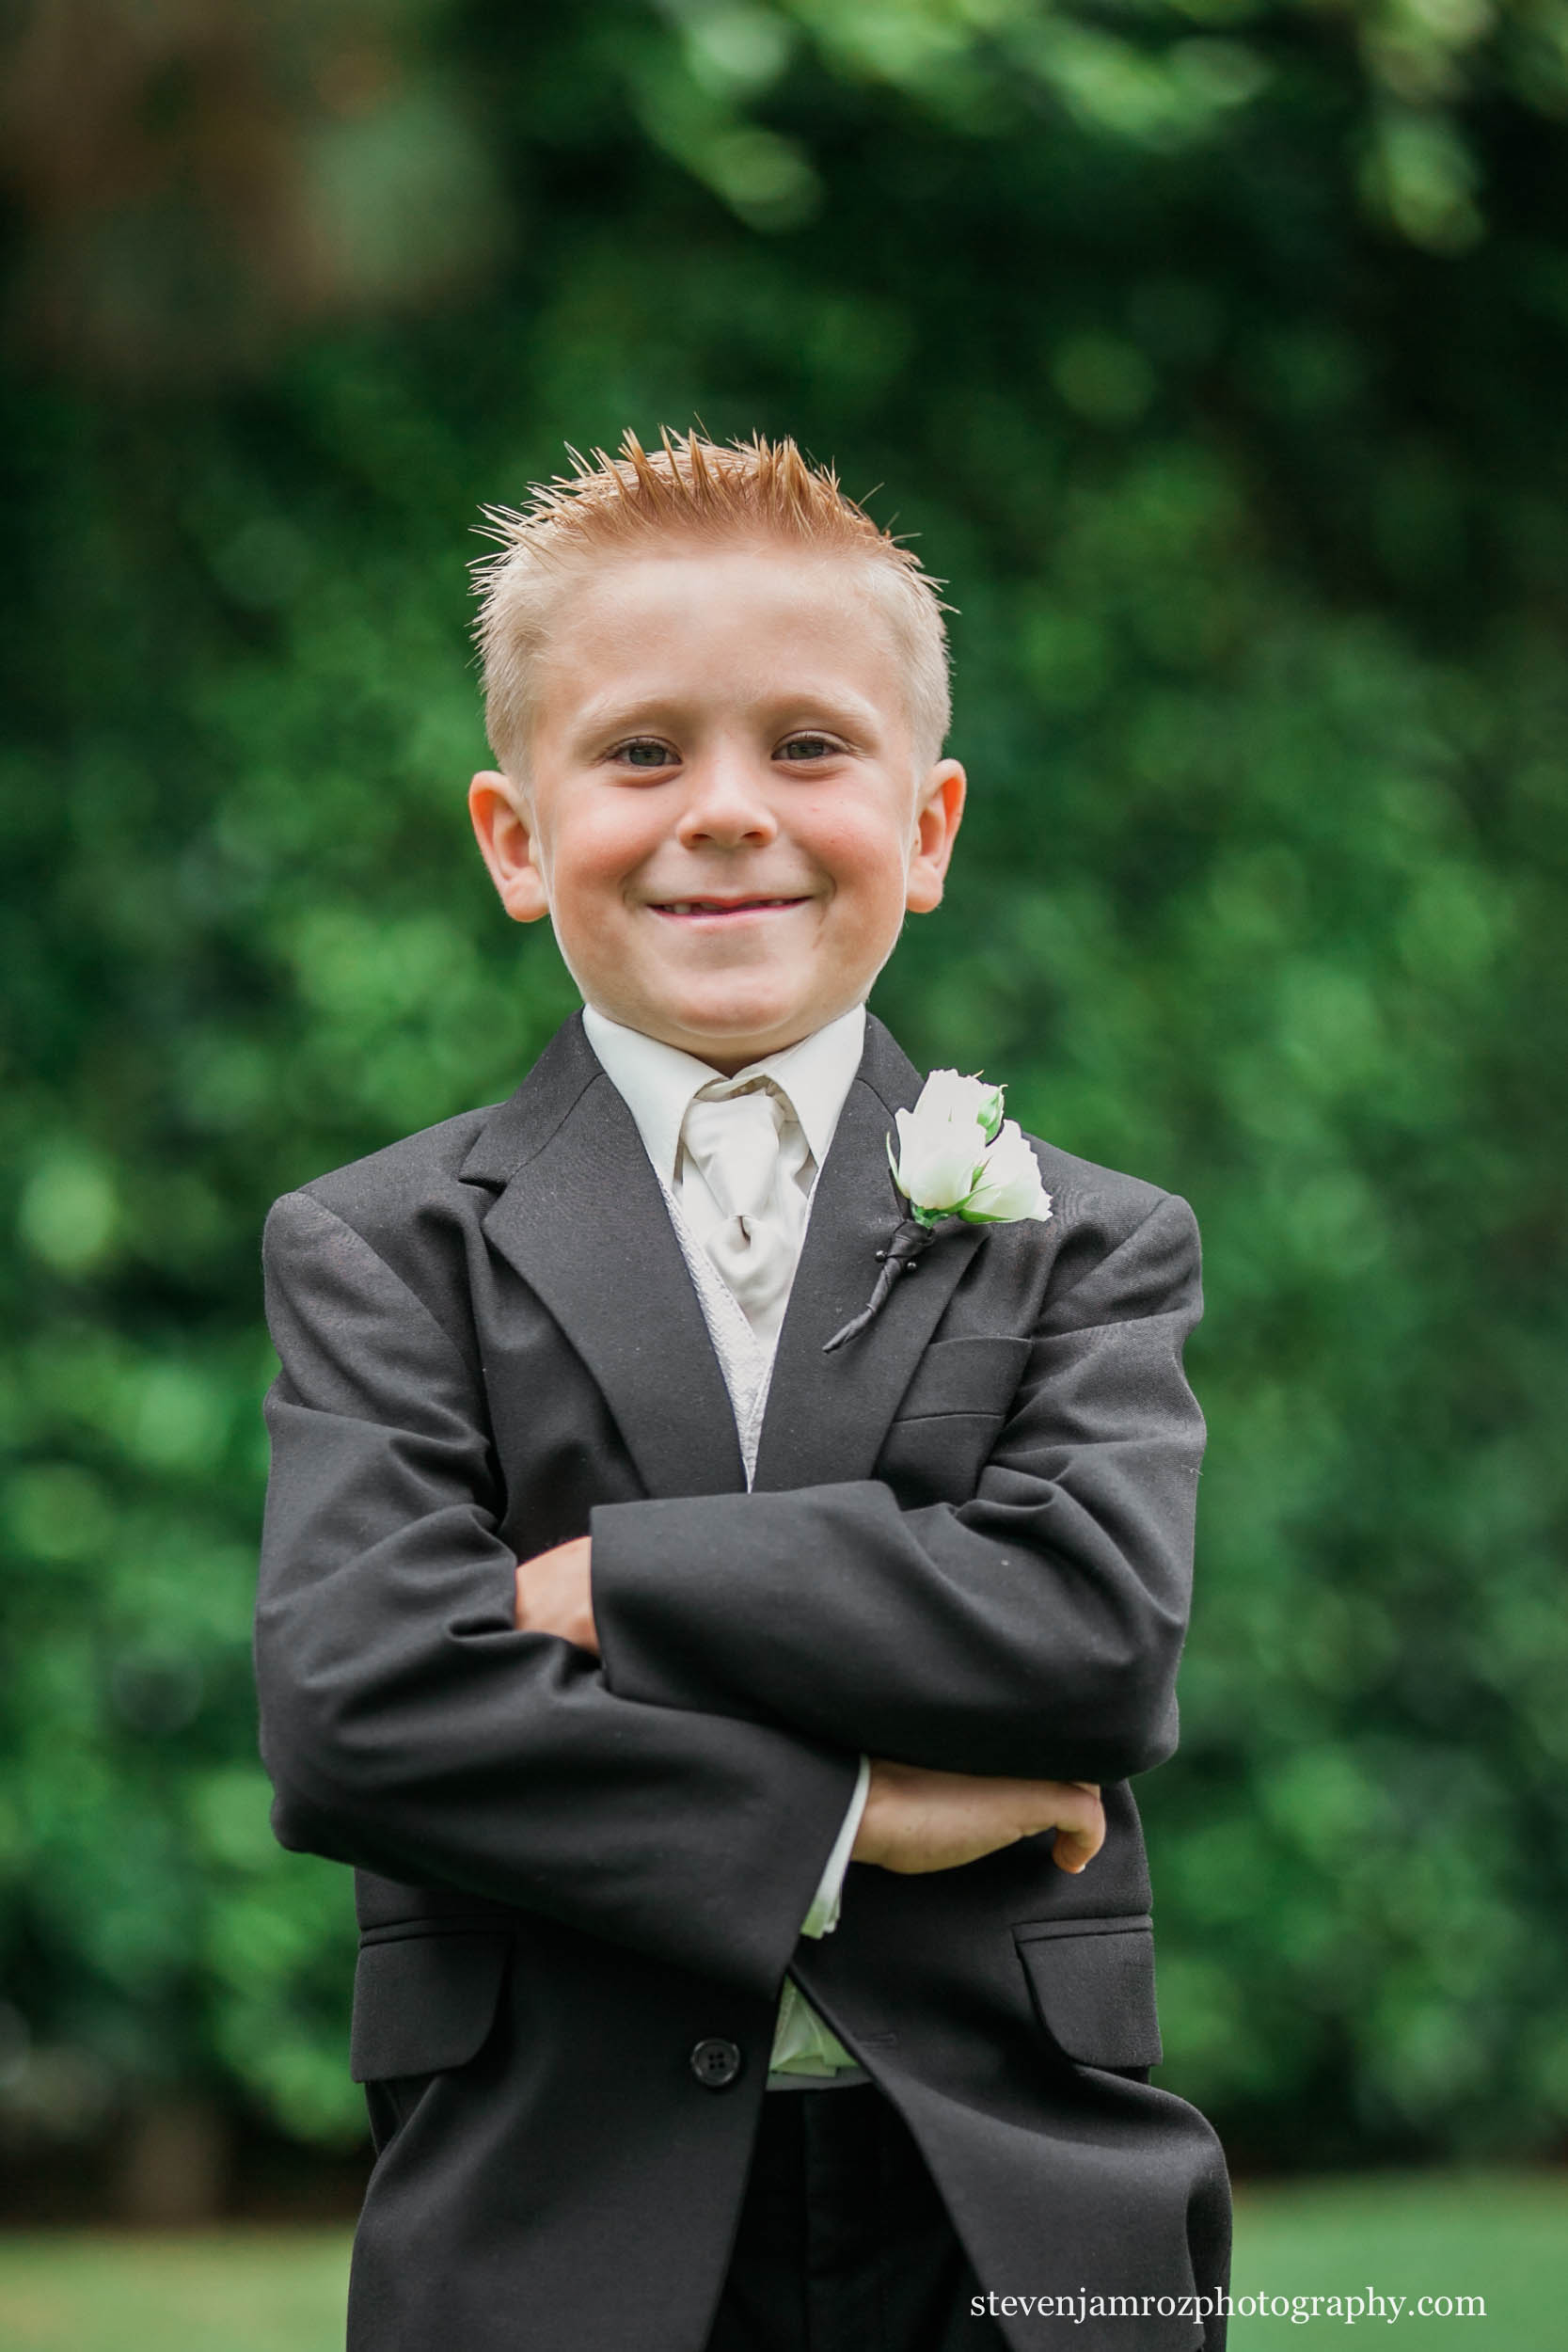 kid-wedding-portrait-raleigh-nc-steven-jamroz-photography-0351.jpg